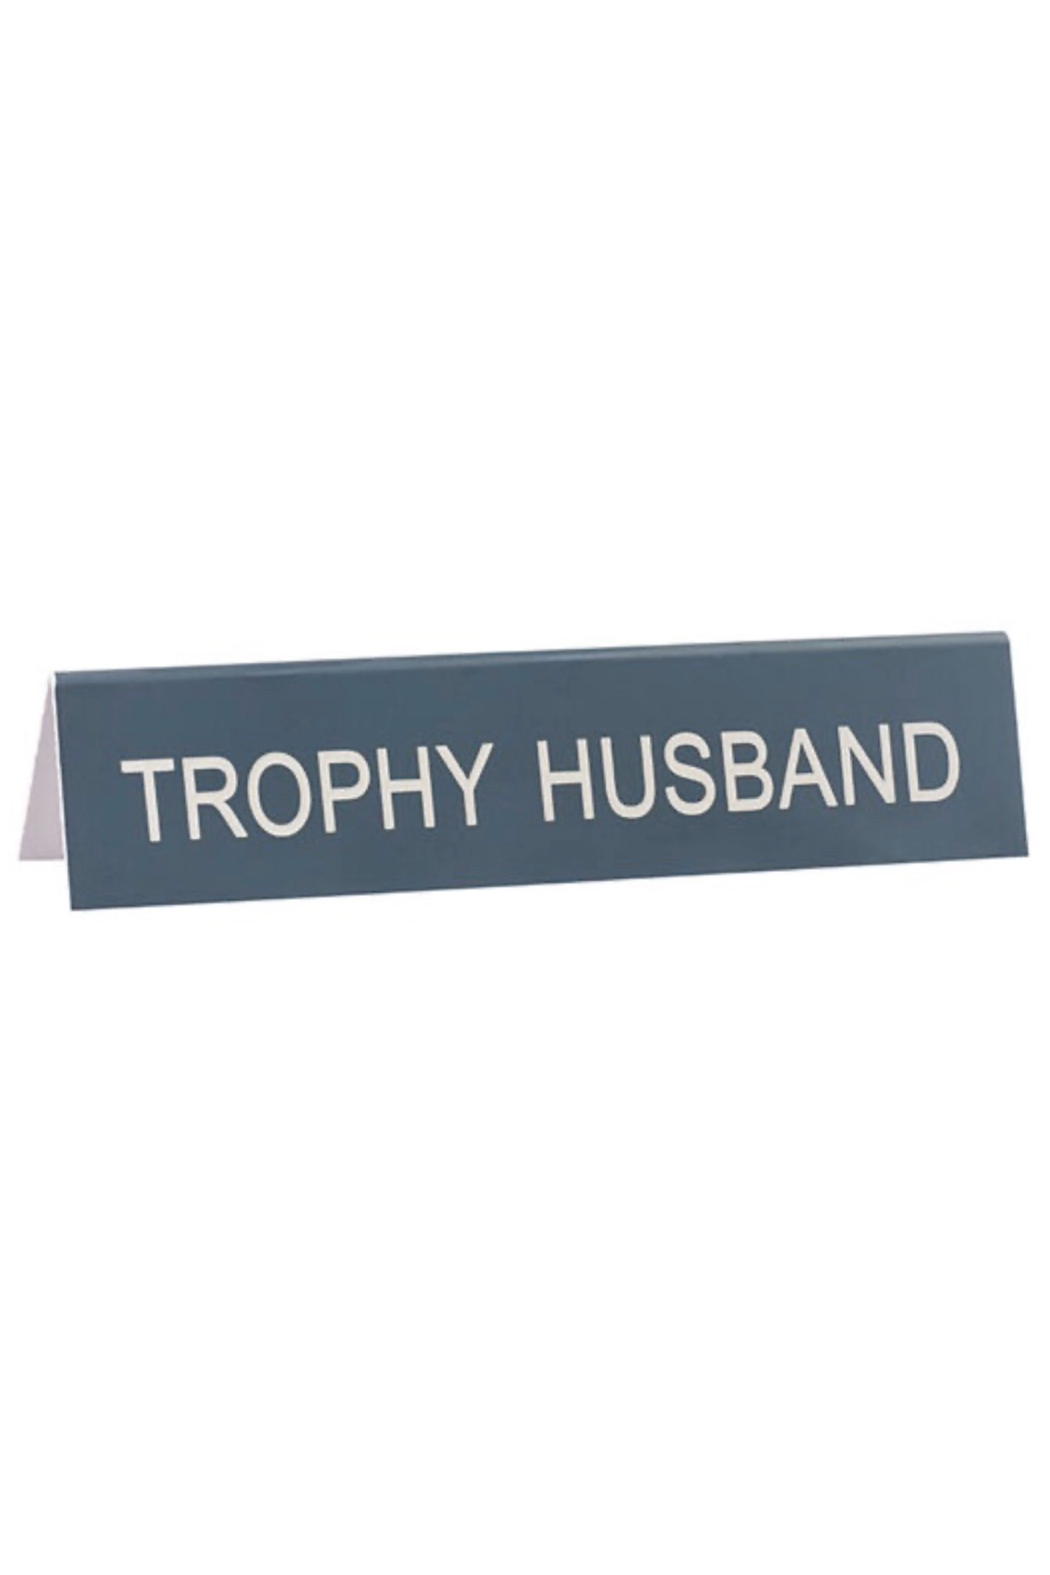 About Face Designs Trophy Husband Sign - Main Image